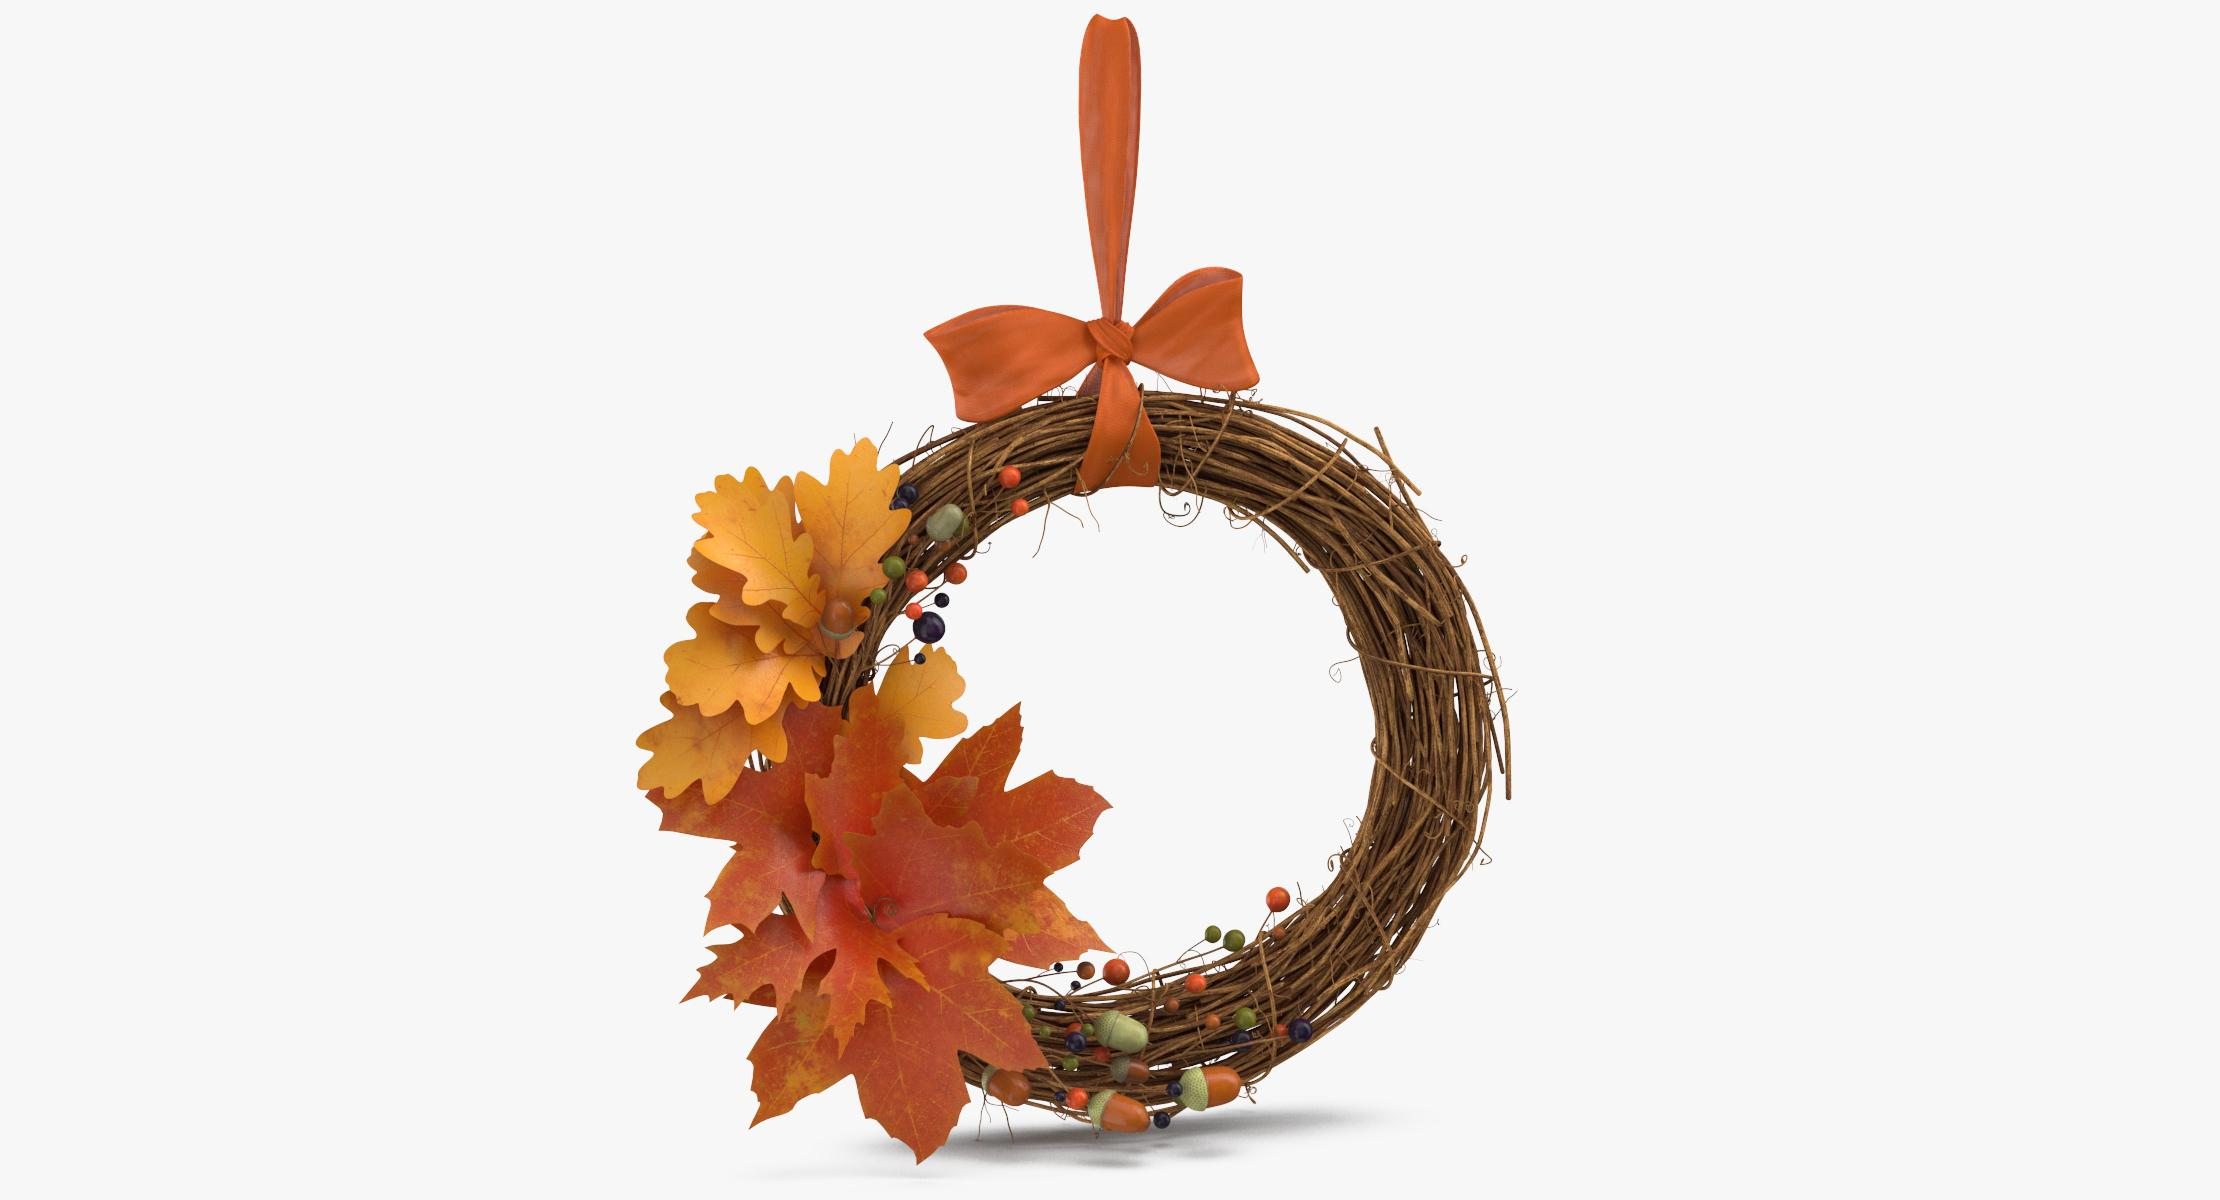 Autumn Wreath 03 - reel 1